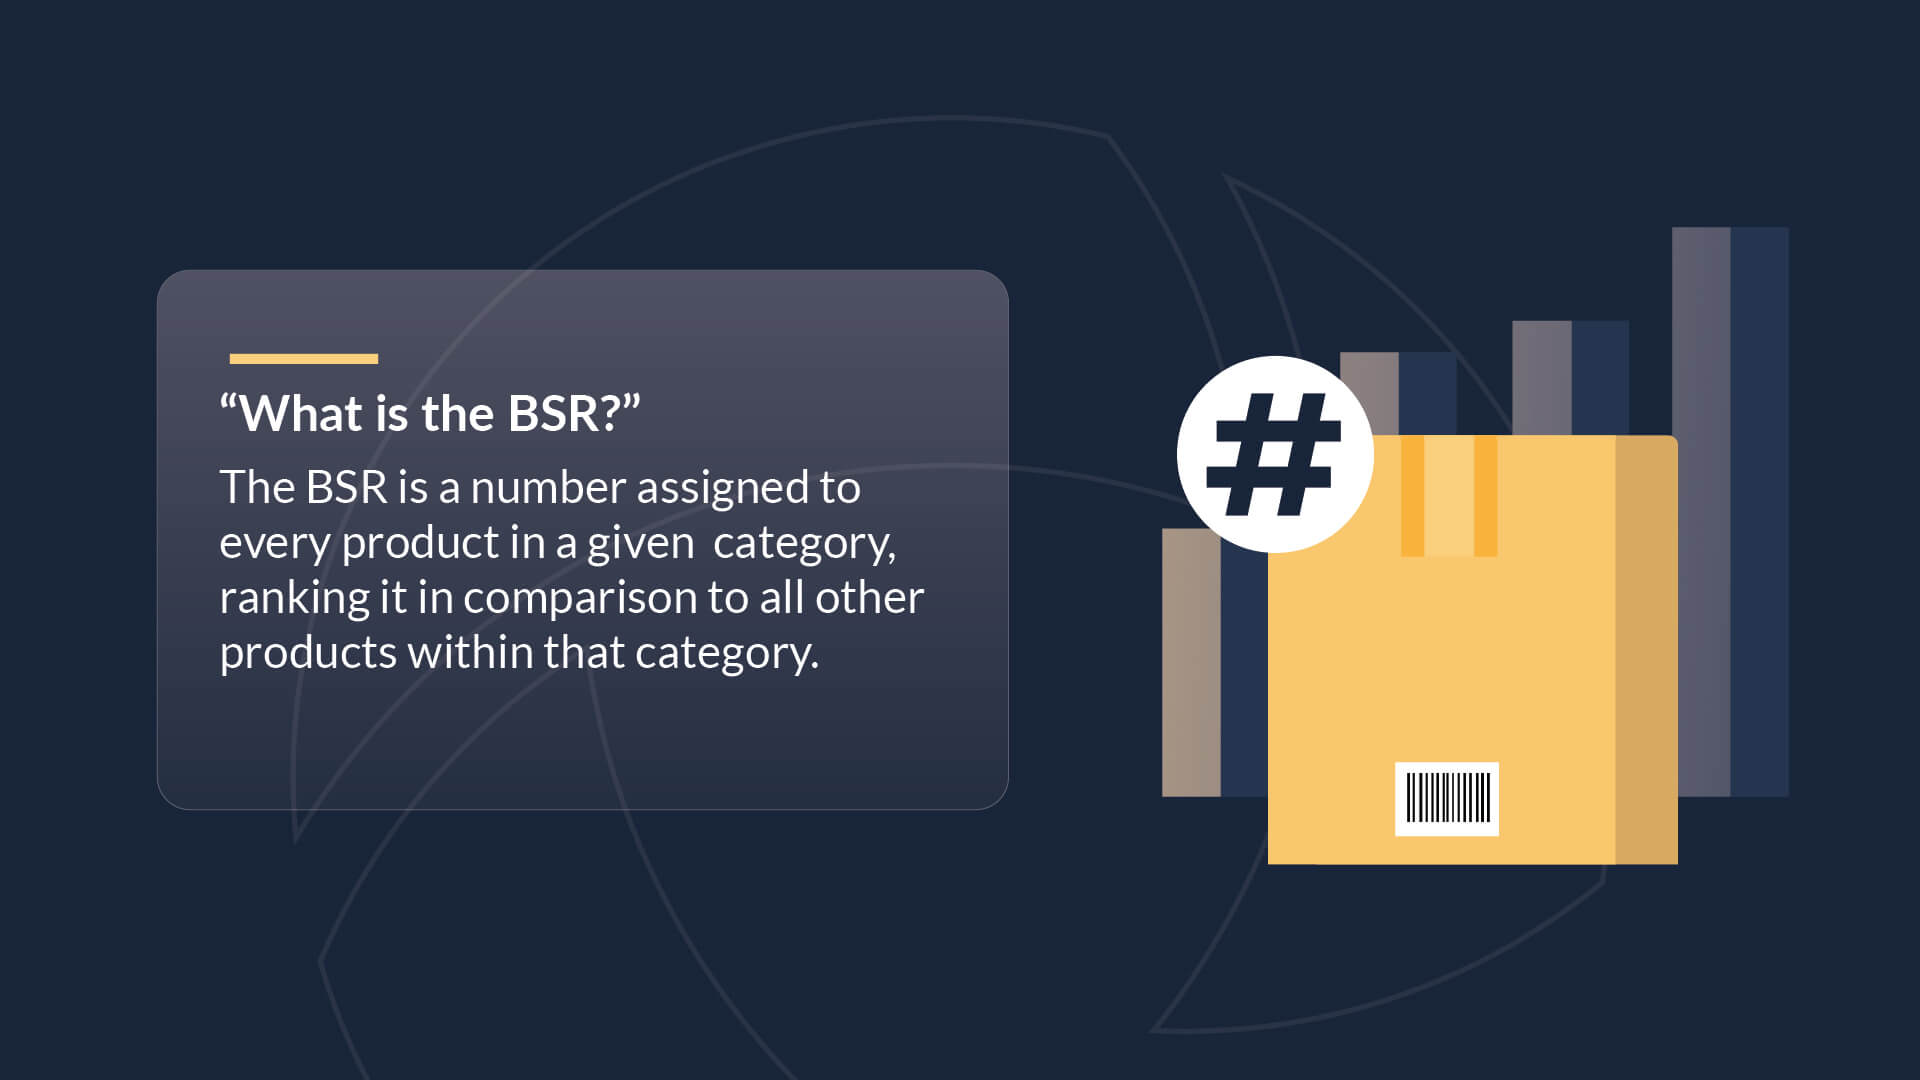 """""""What is the BSR?"""" The BSR is a number assigned to every product in a given cateogry, ranking it in comparison to all other products within that category."""